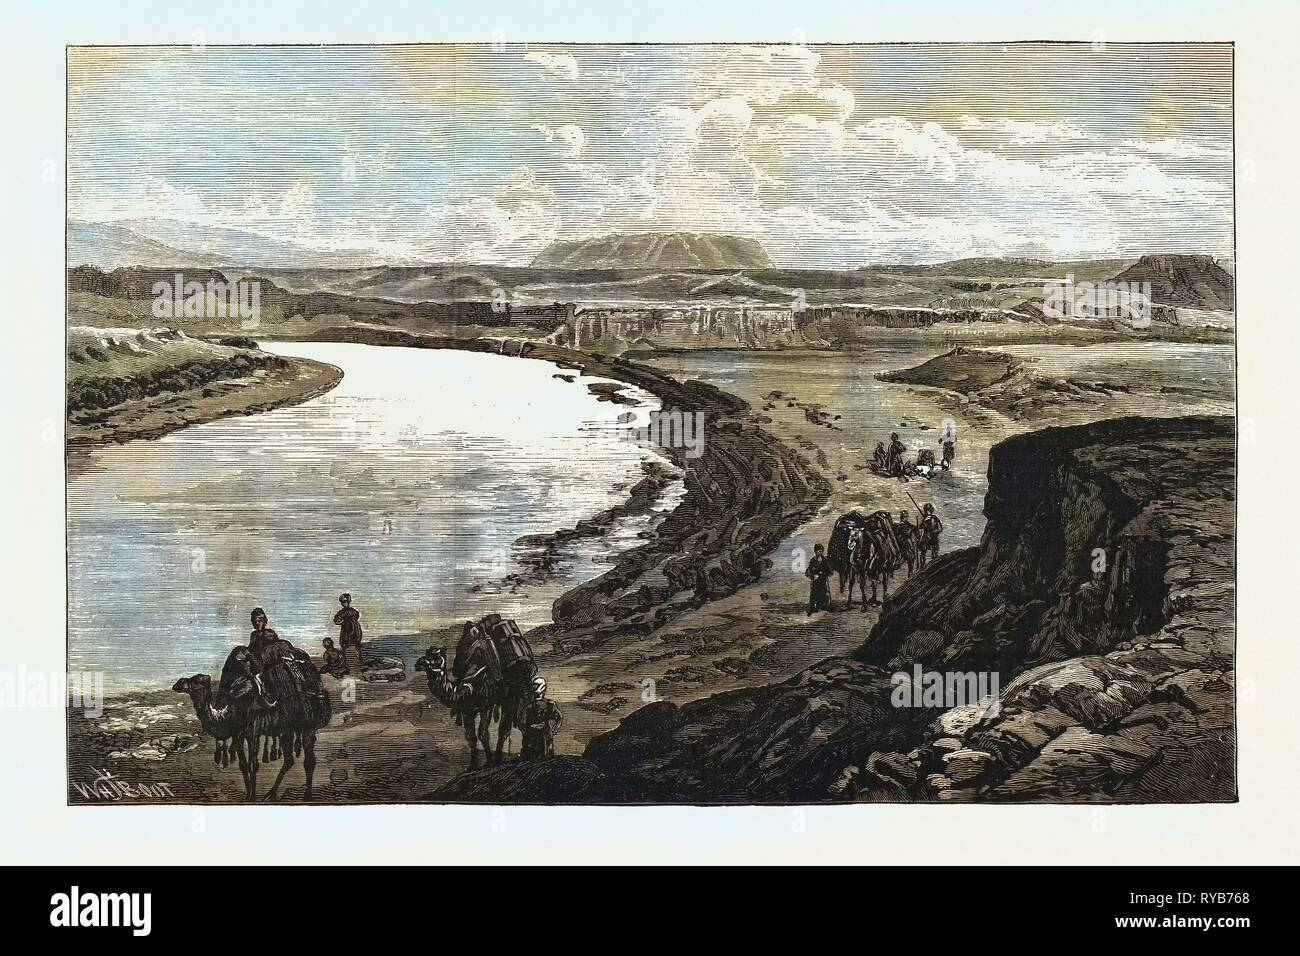 The Afghan Boundary: Junction of the Murghab and Kushk Rivers, Ak-Tapa in the Distance, 1885 - Stock Image